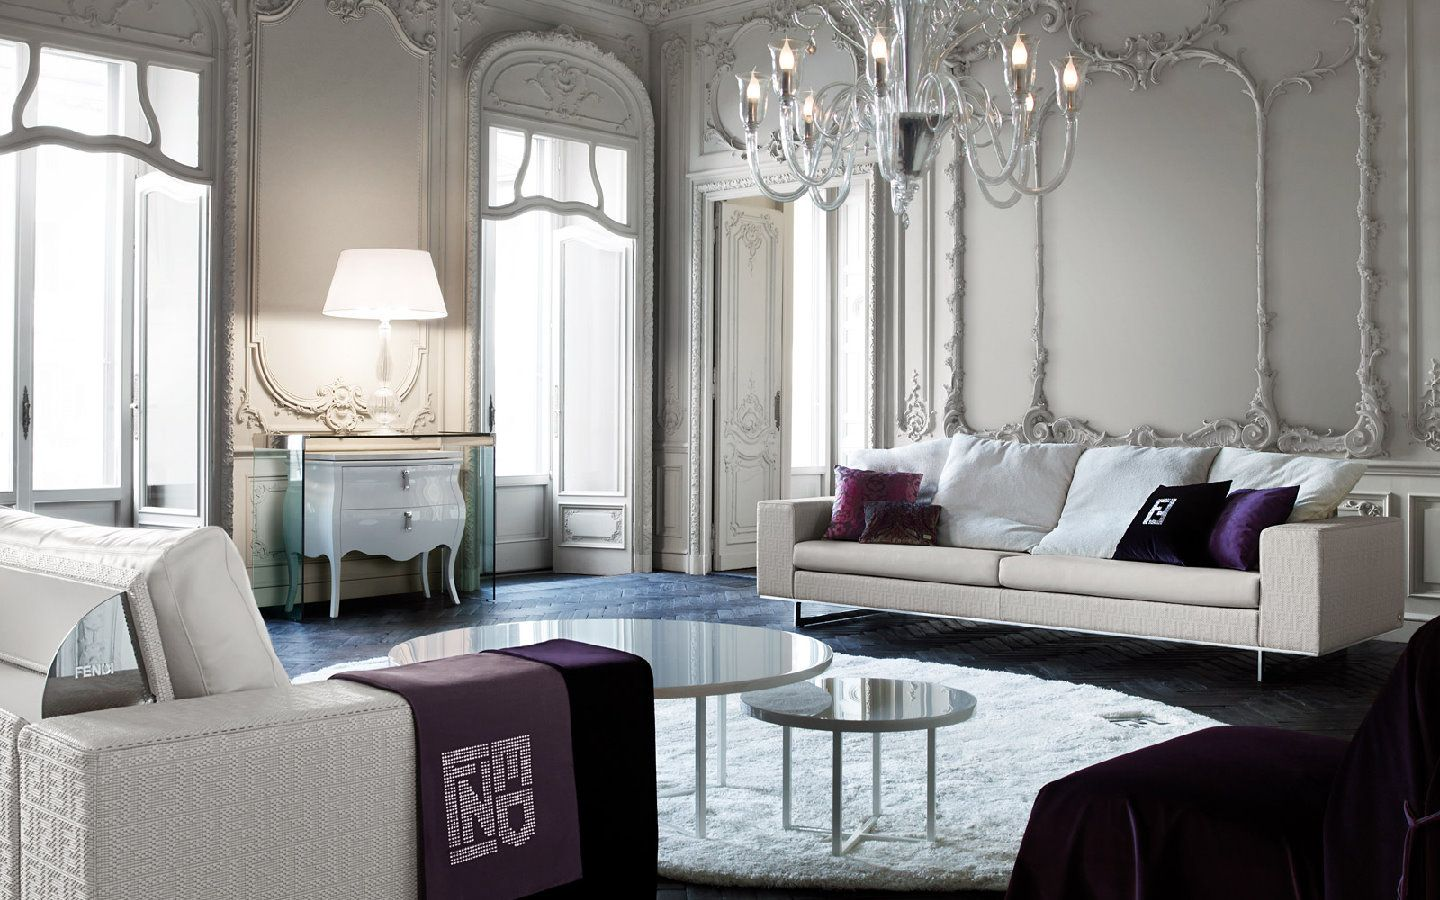 Top 10 Living Room Furniture Brands With Images Luxury Modern Furniture Living Room Designs Luxury Furniture